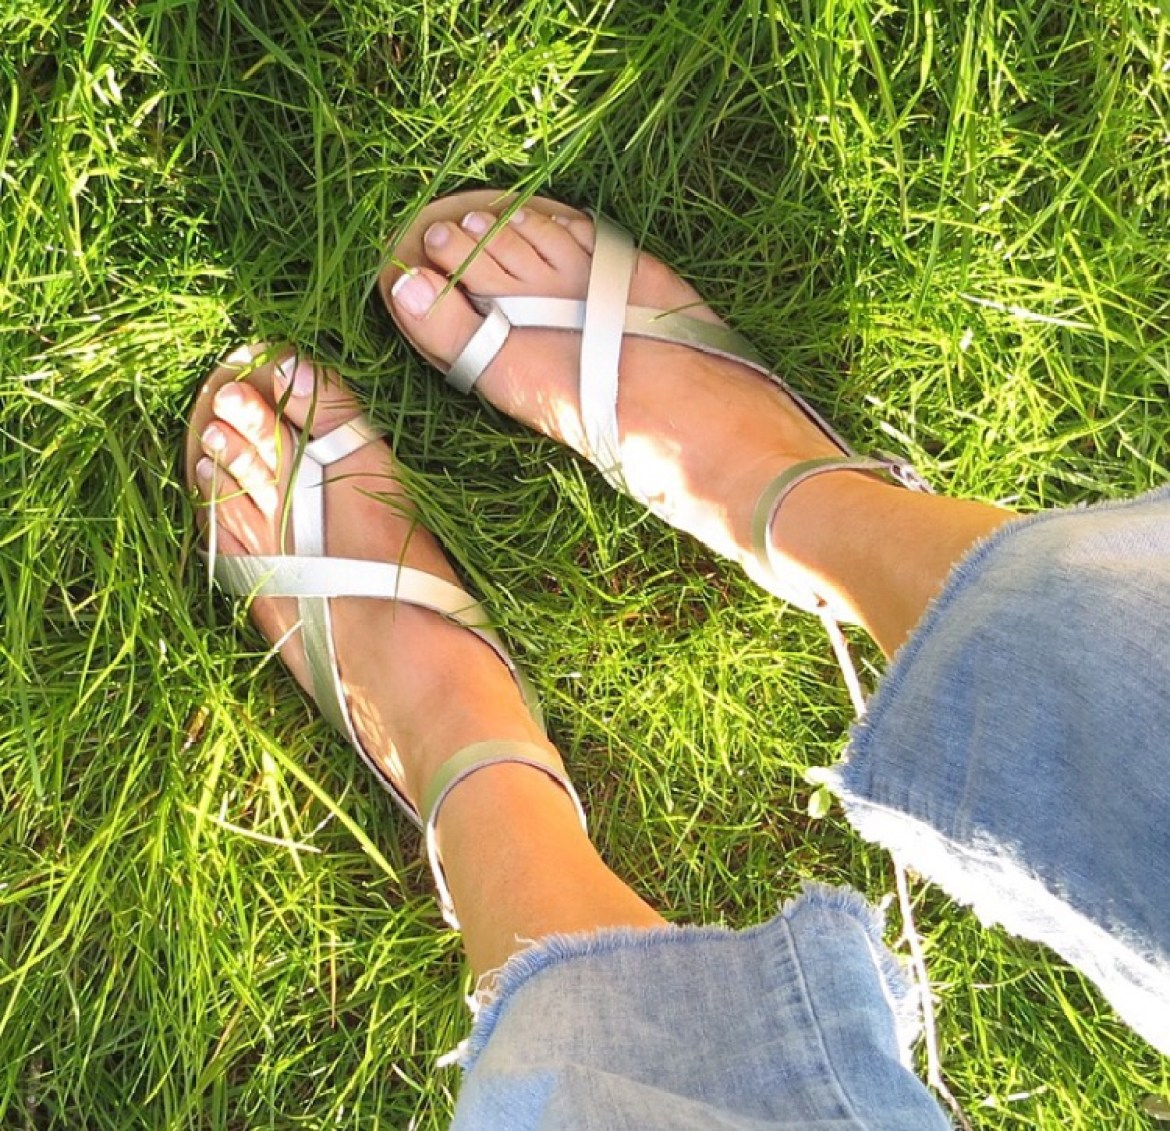 Standing in the grass with sandals on